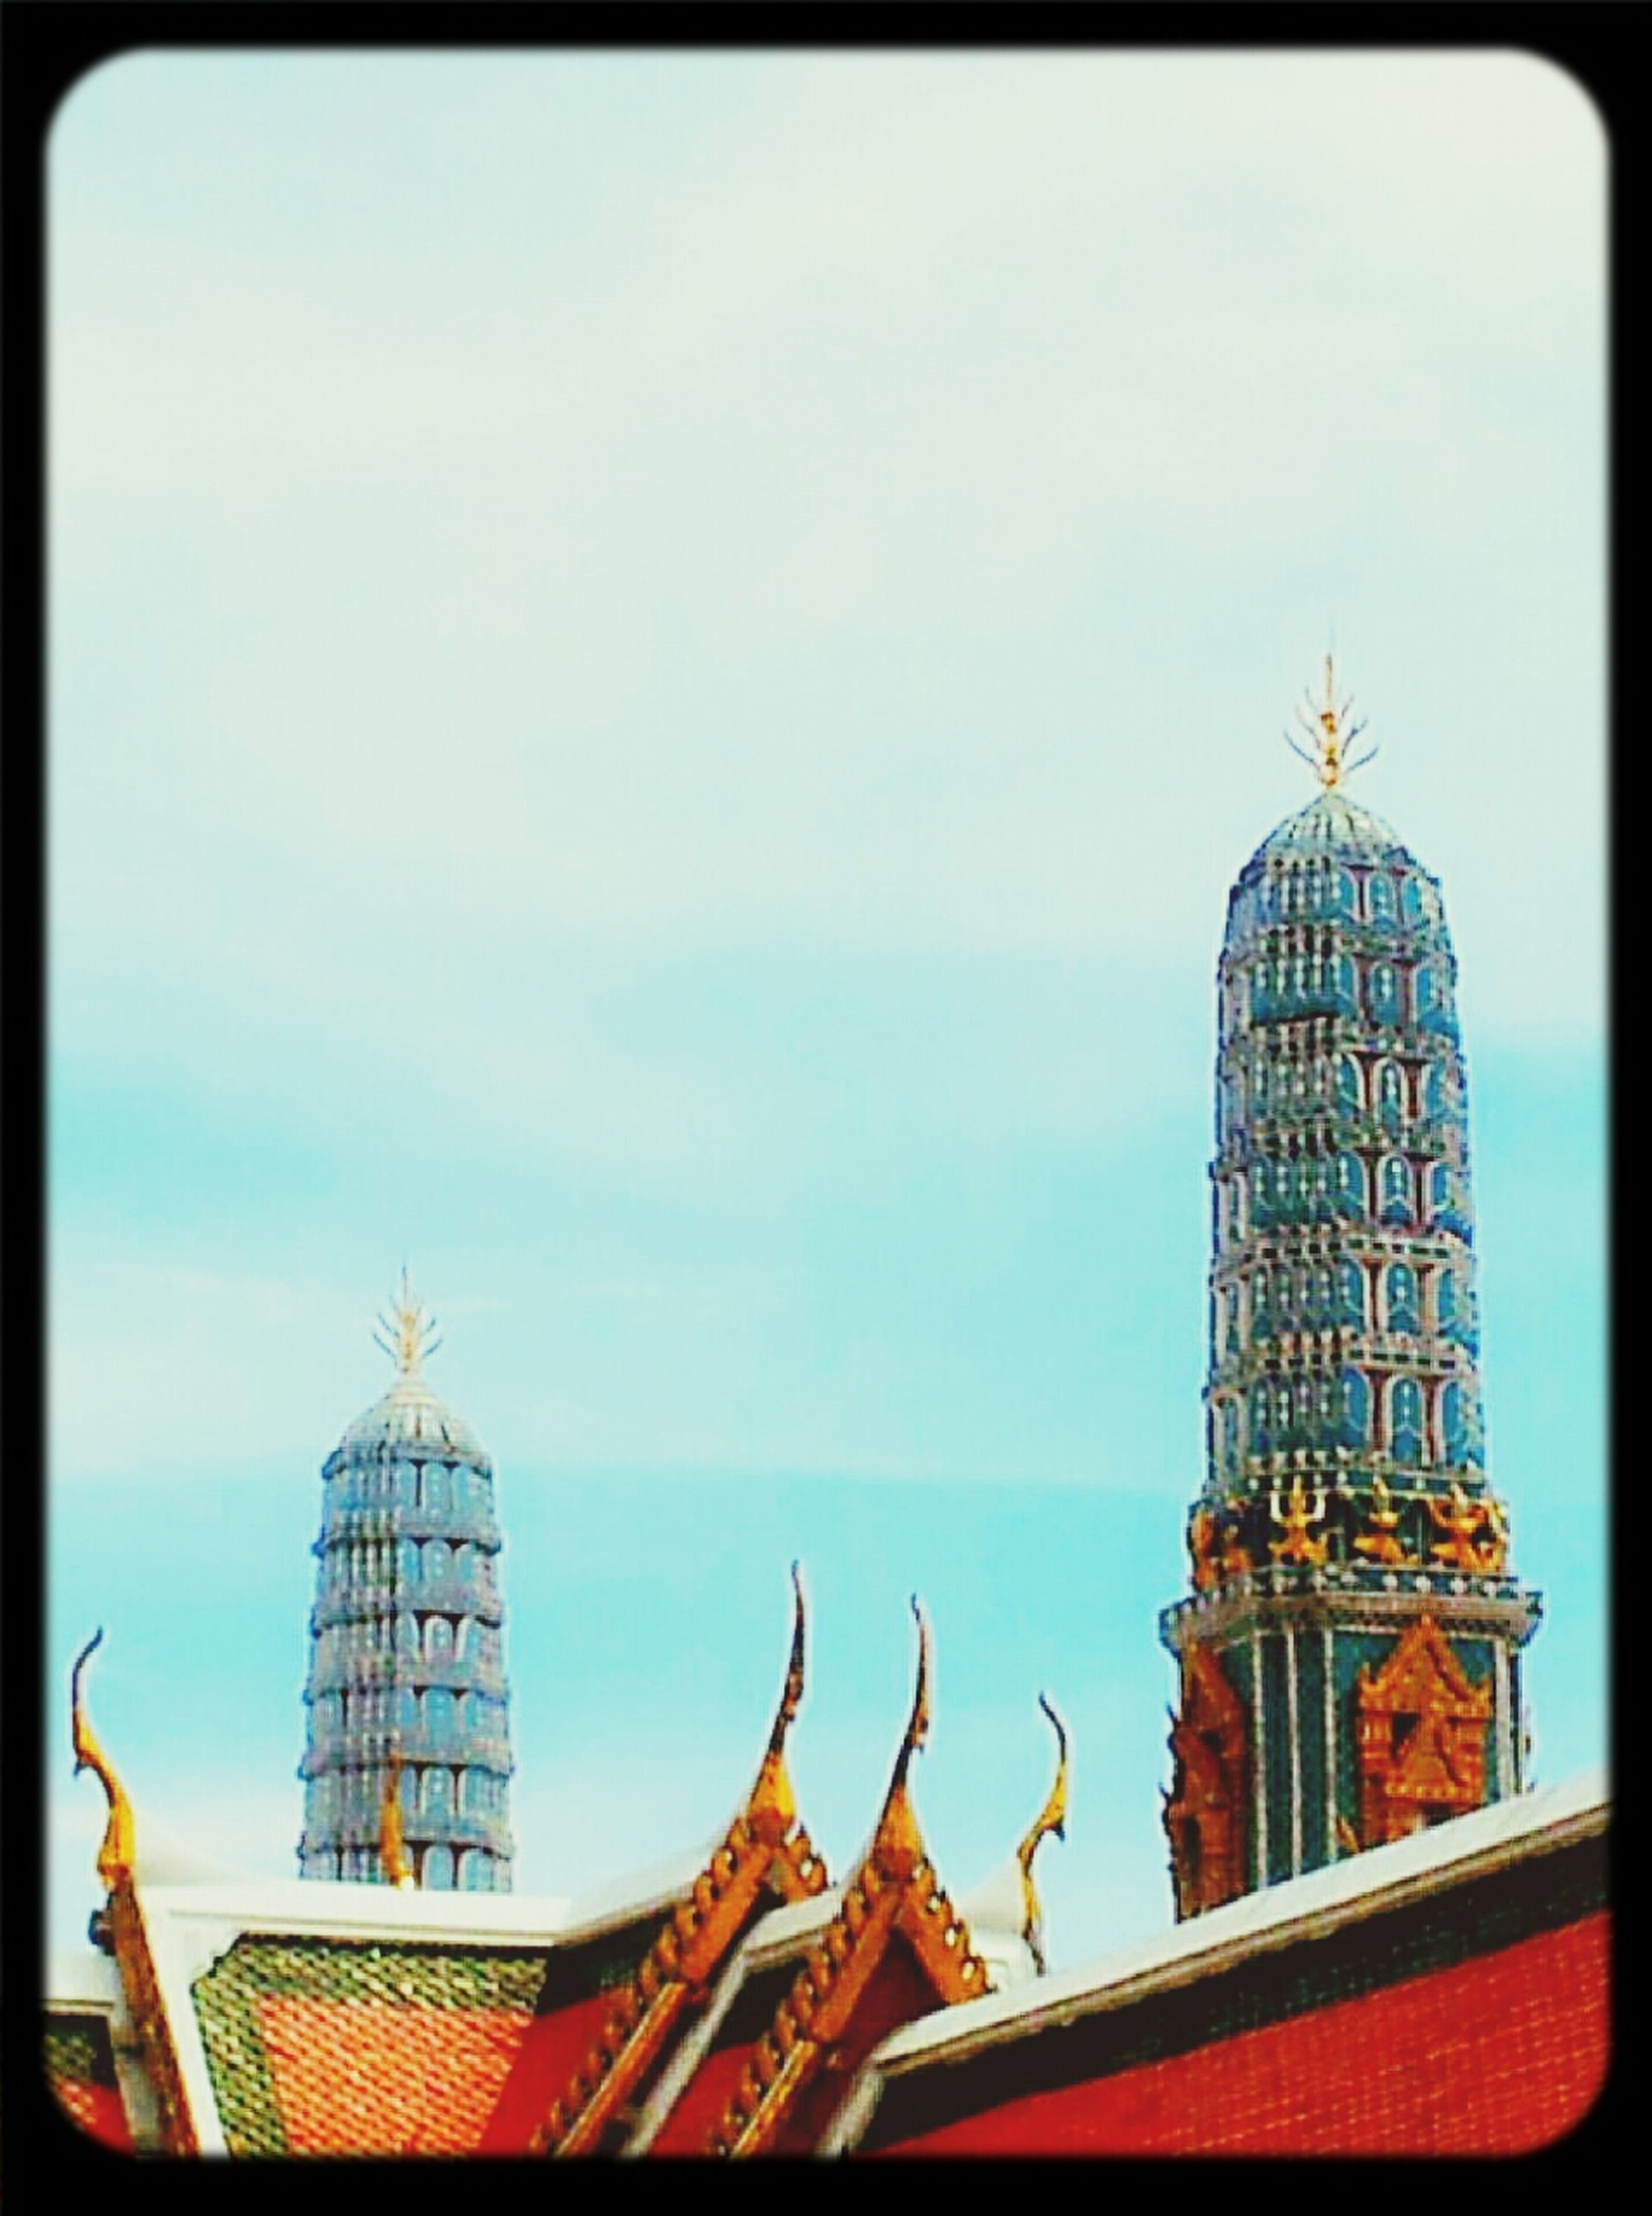 architecture, built structure, building exterior, transfer print, famous place, low angle view, sky, travel destinations, international landmark, place of worship, religion, travel, tourism, capital cities, auto post production filter, tower, spirituality, dome, high section, spire